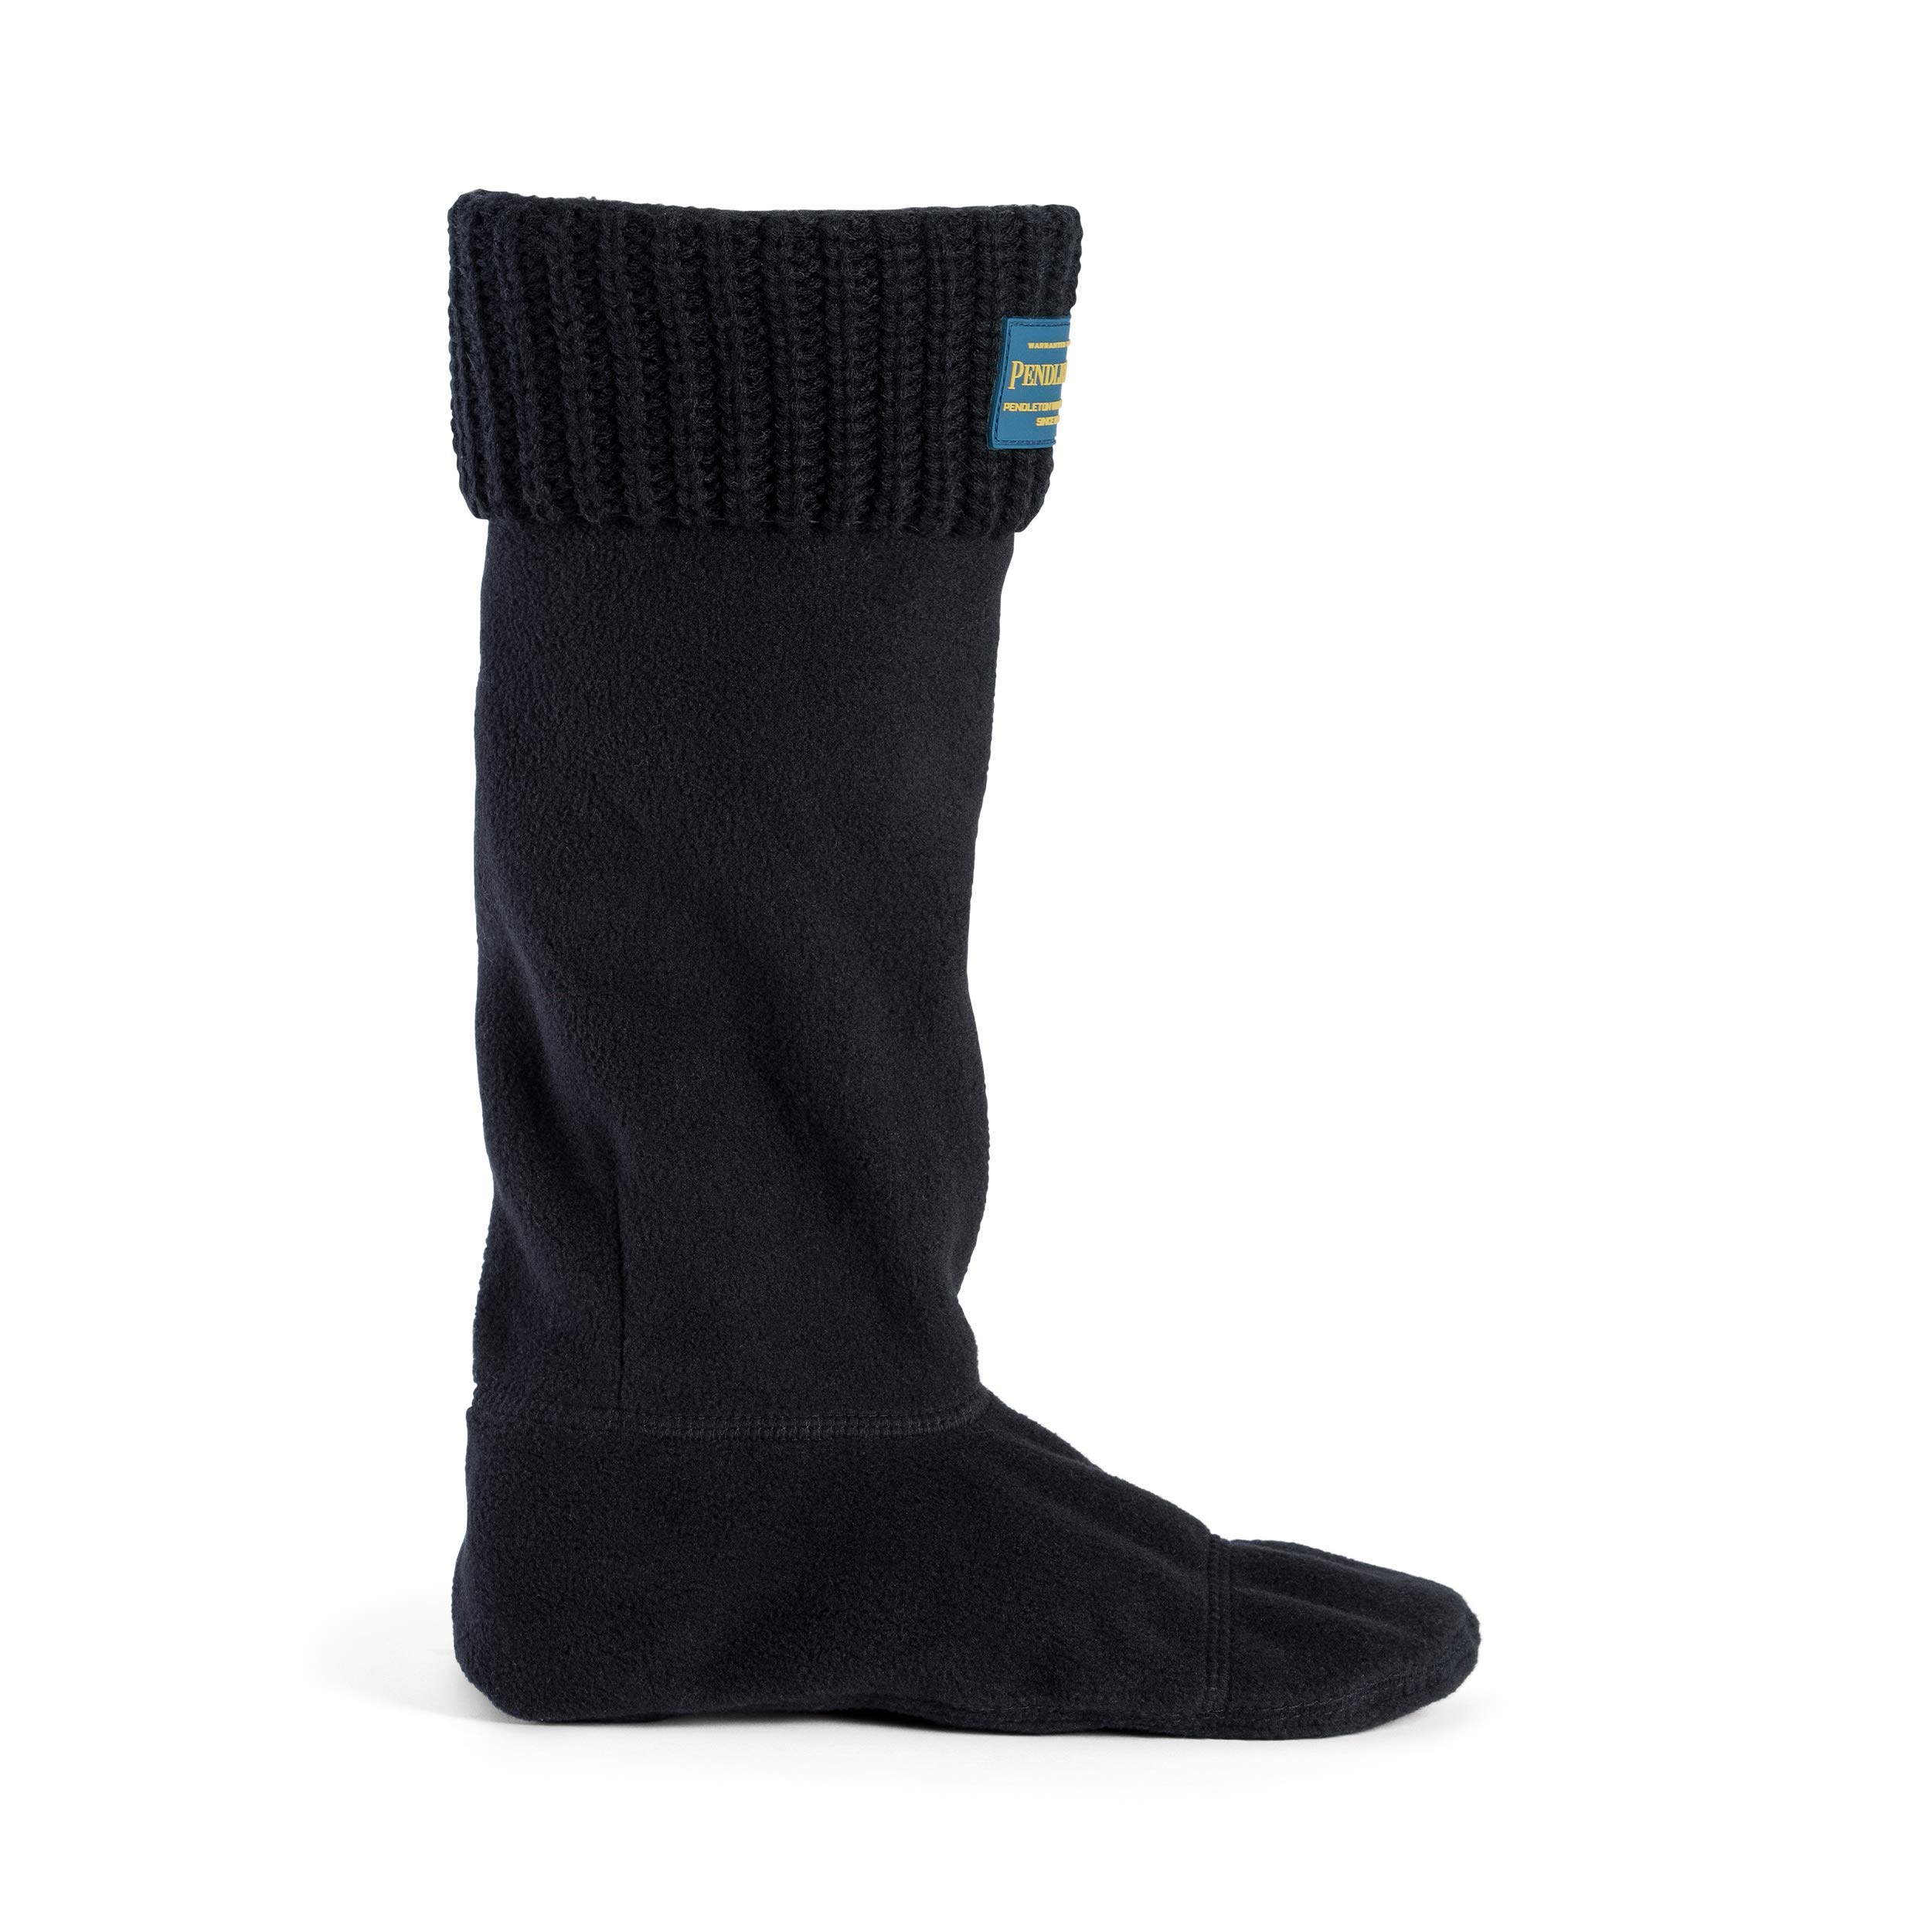 Pendleton Women's Tall Shaker Stitch Thermal Boot Sock Lining for Rain Boots